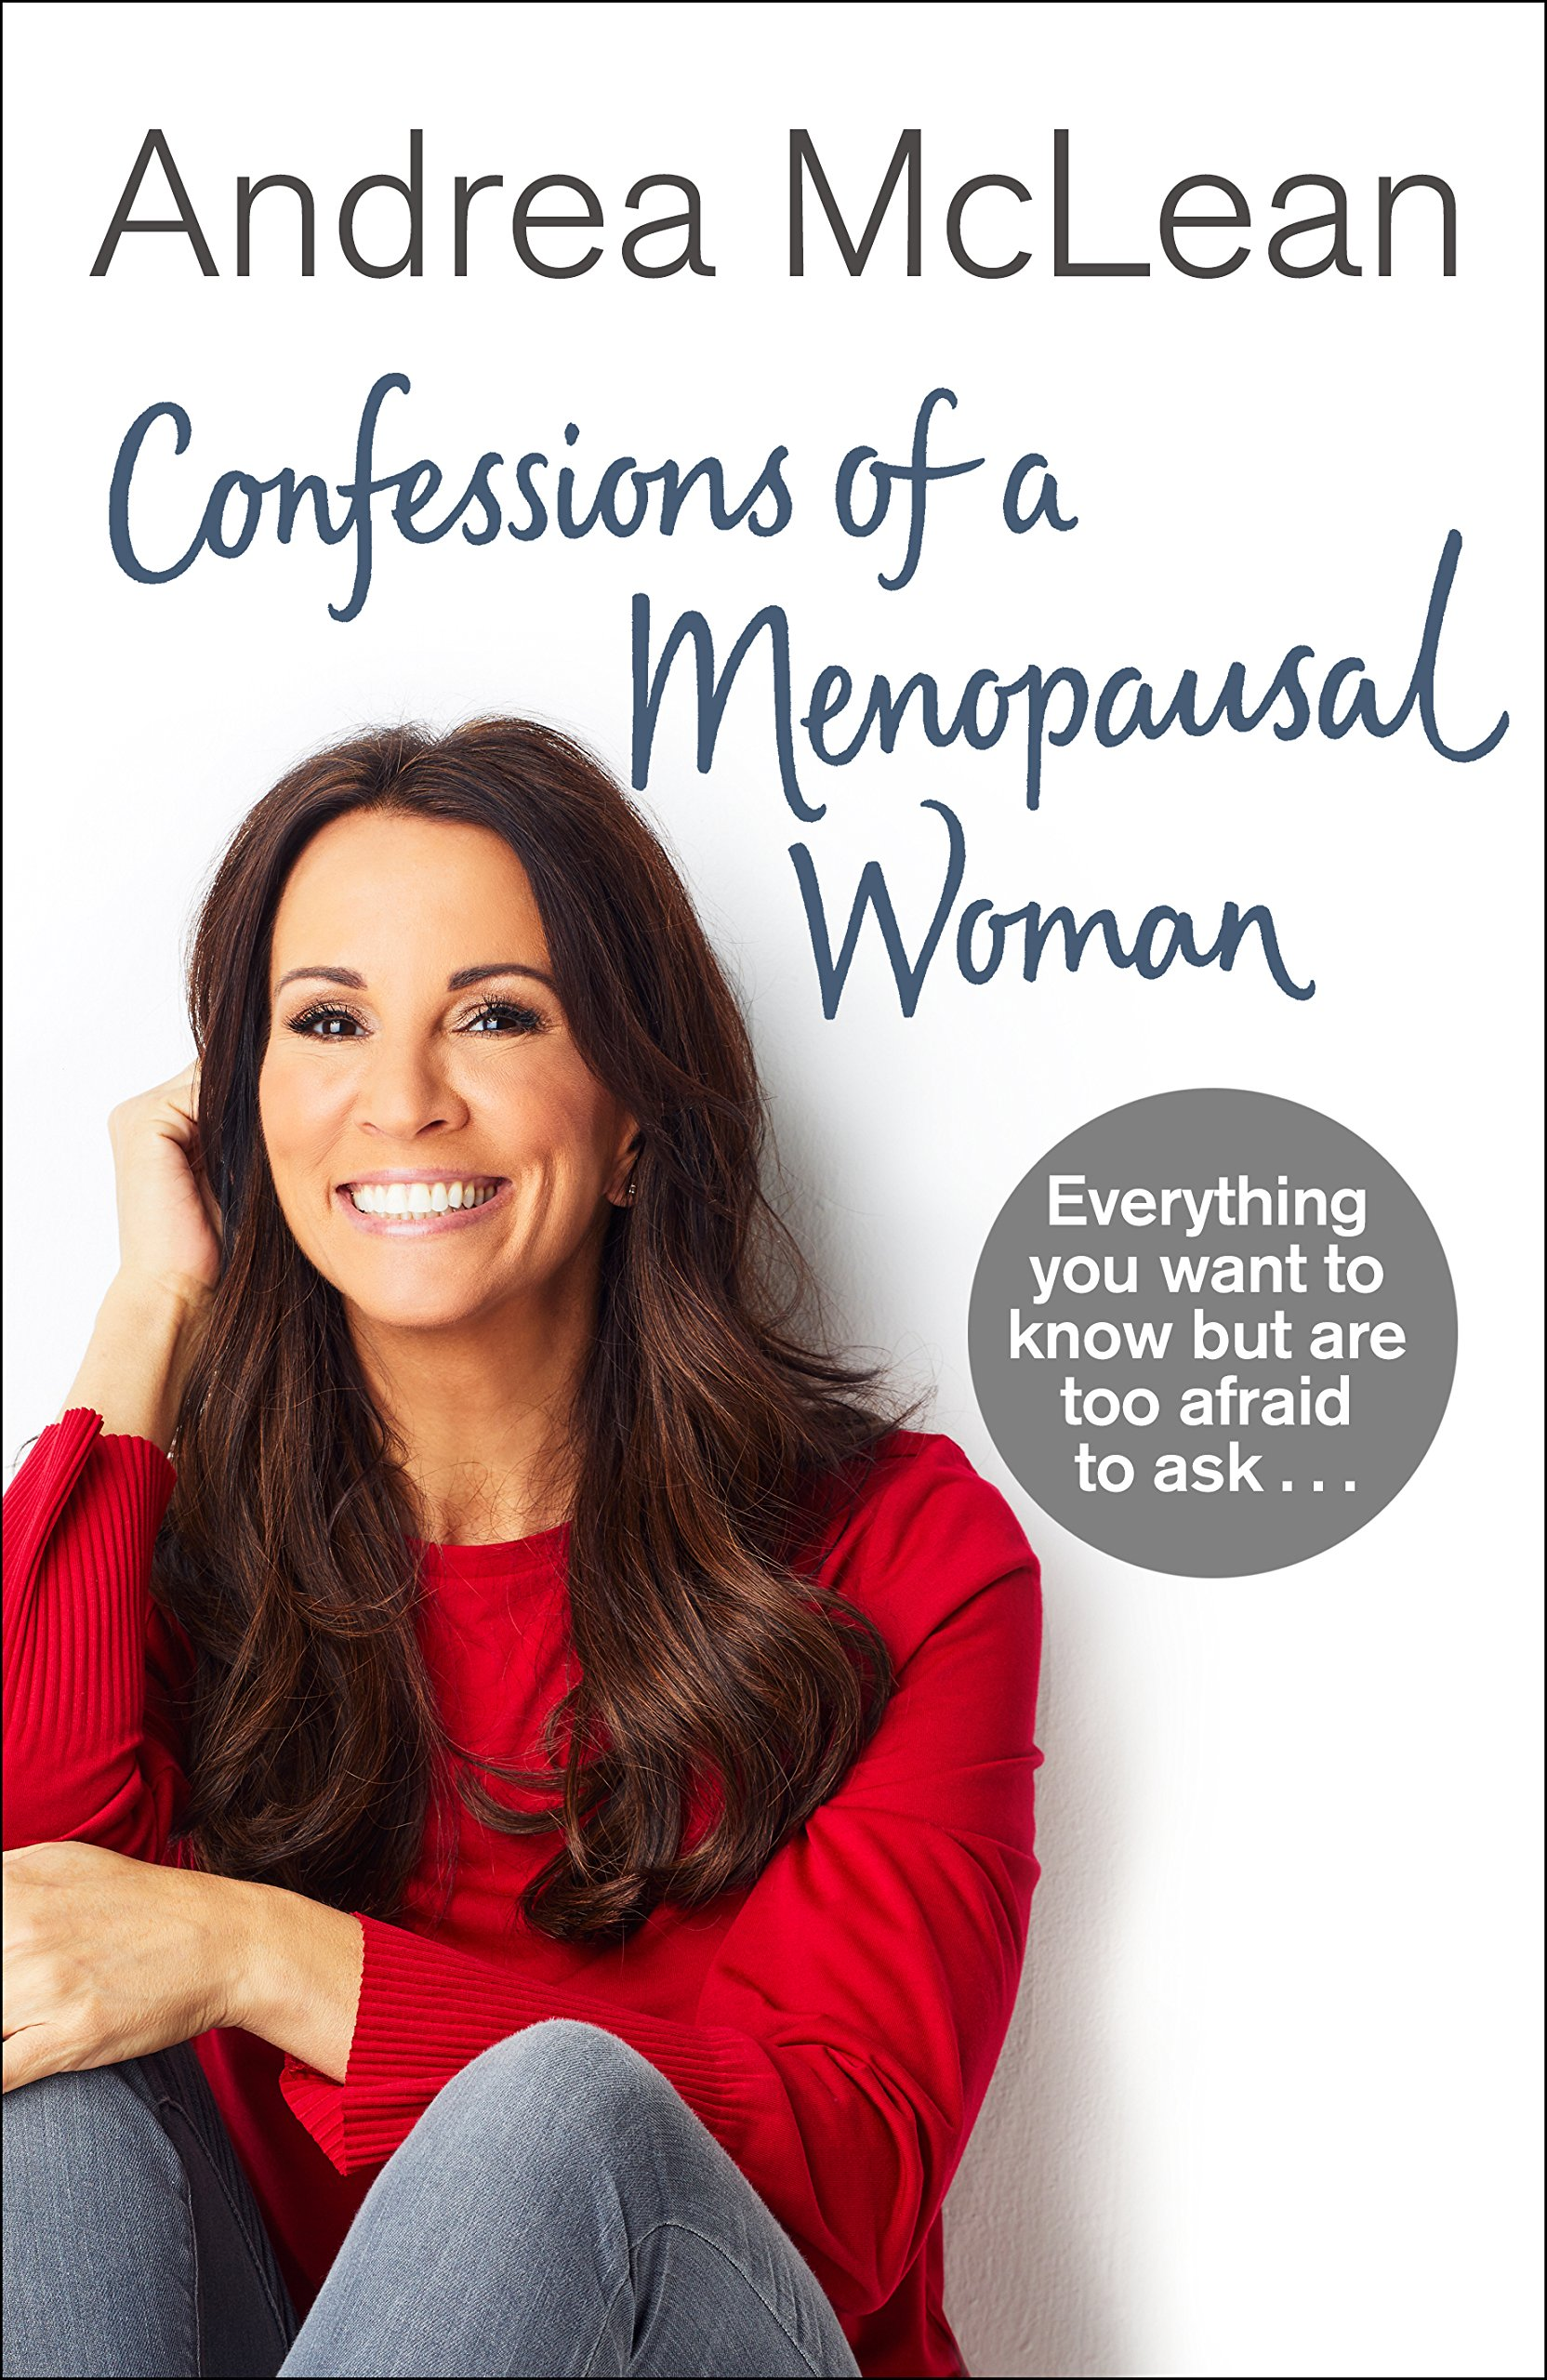 Discussion on this topic: Addressing The Silent Taboo Of Menopause In , addressing-the-silent-taboo-of-menopause-in/